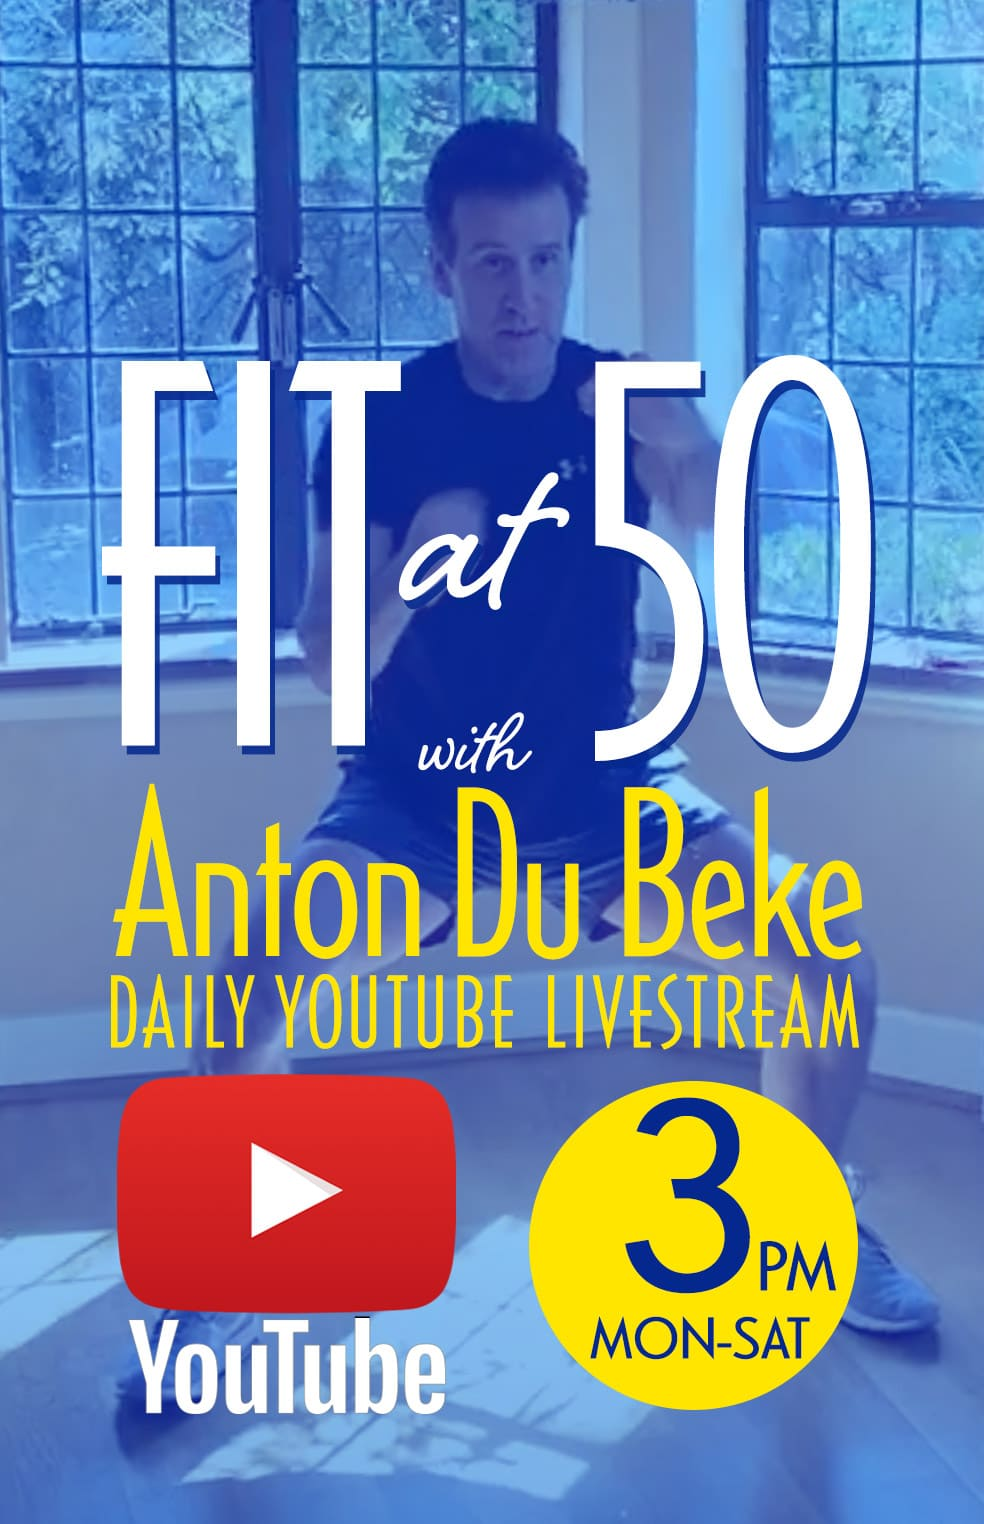 Fit at 50 daily live-stream on youtube